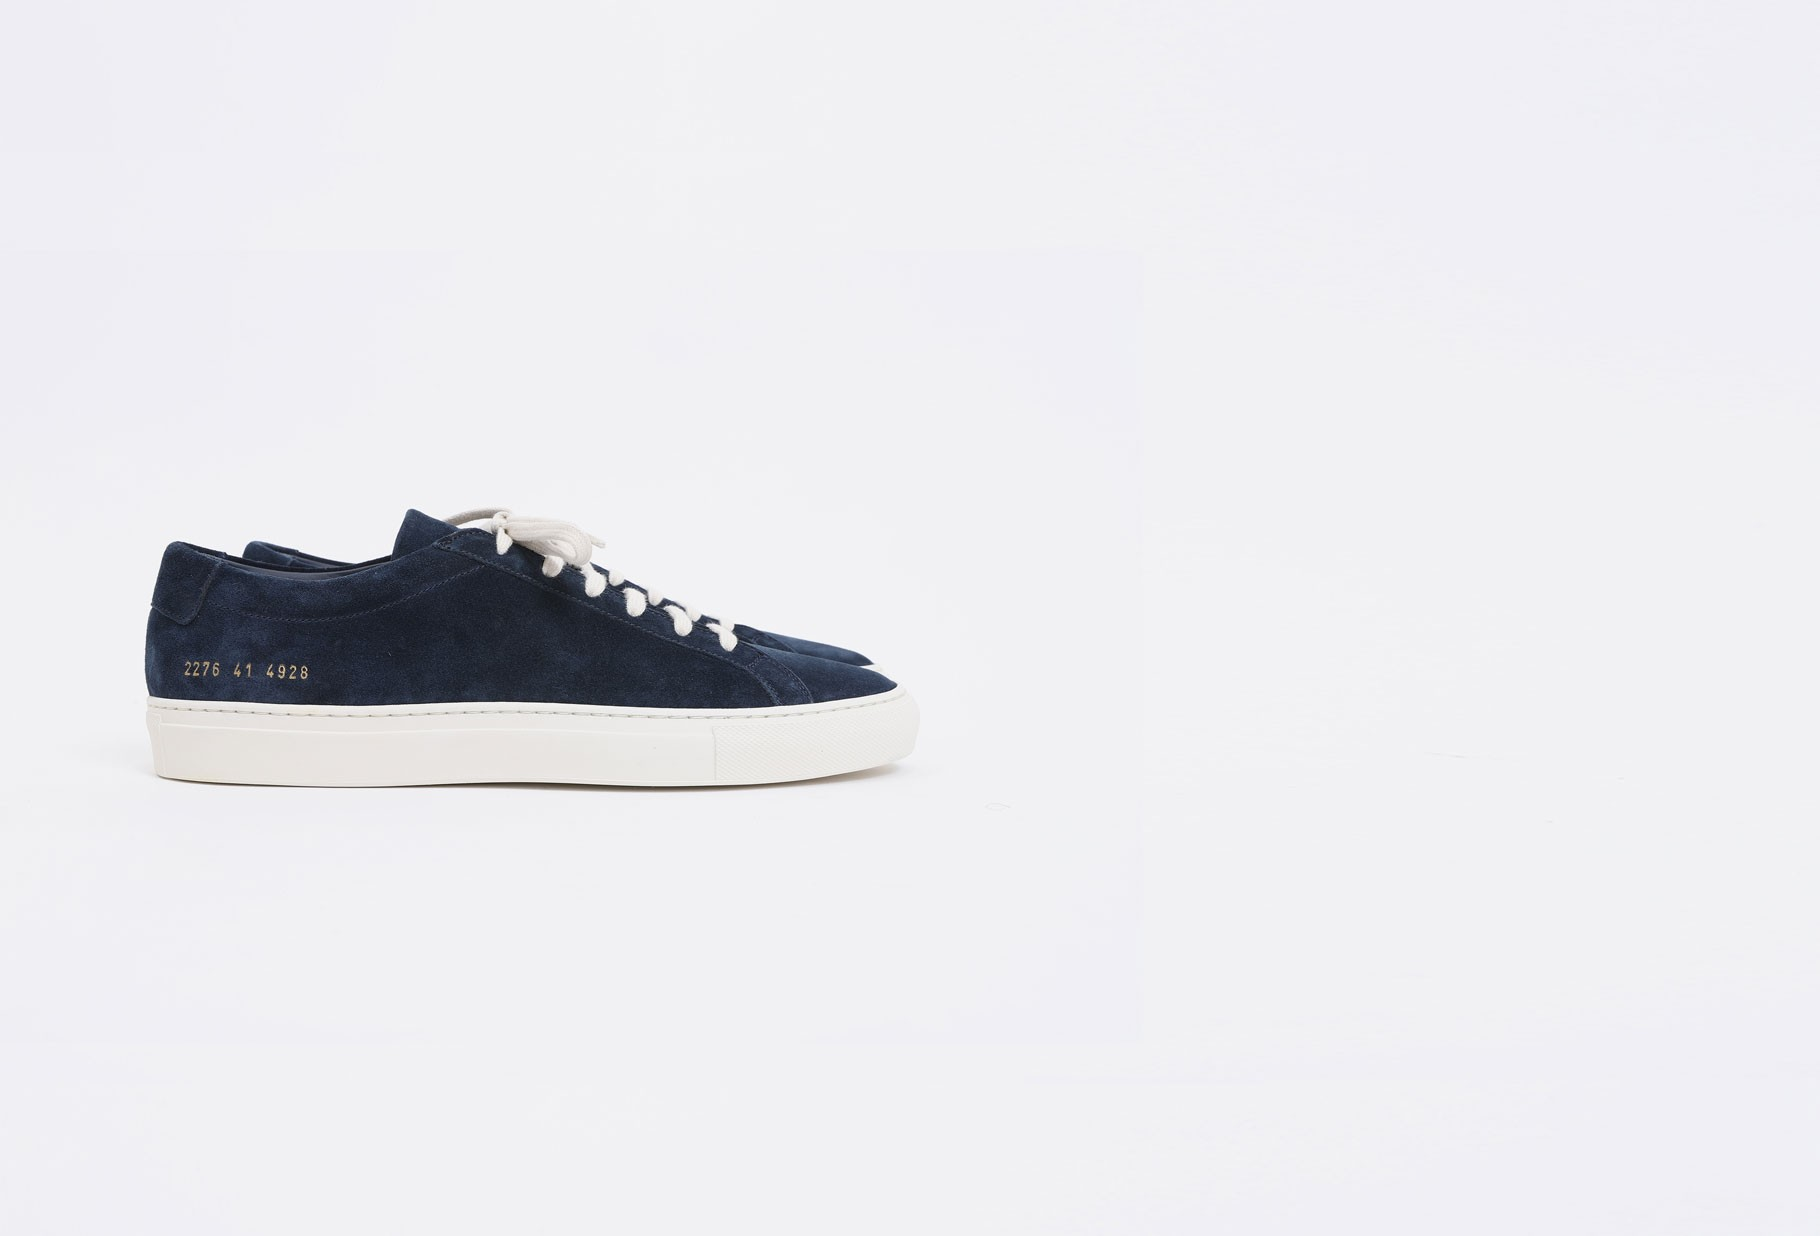 COMMON PROJECTS / Original achilles low in suede Navy 4928